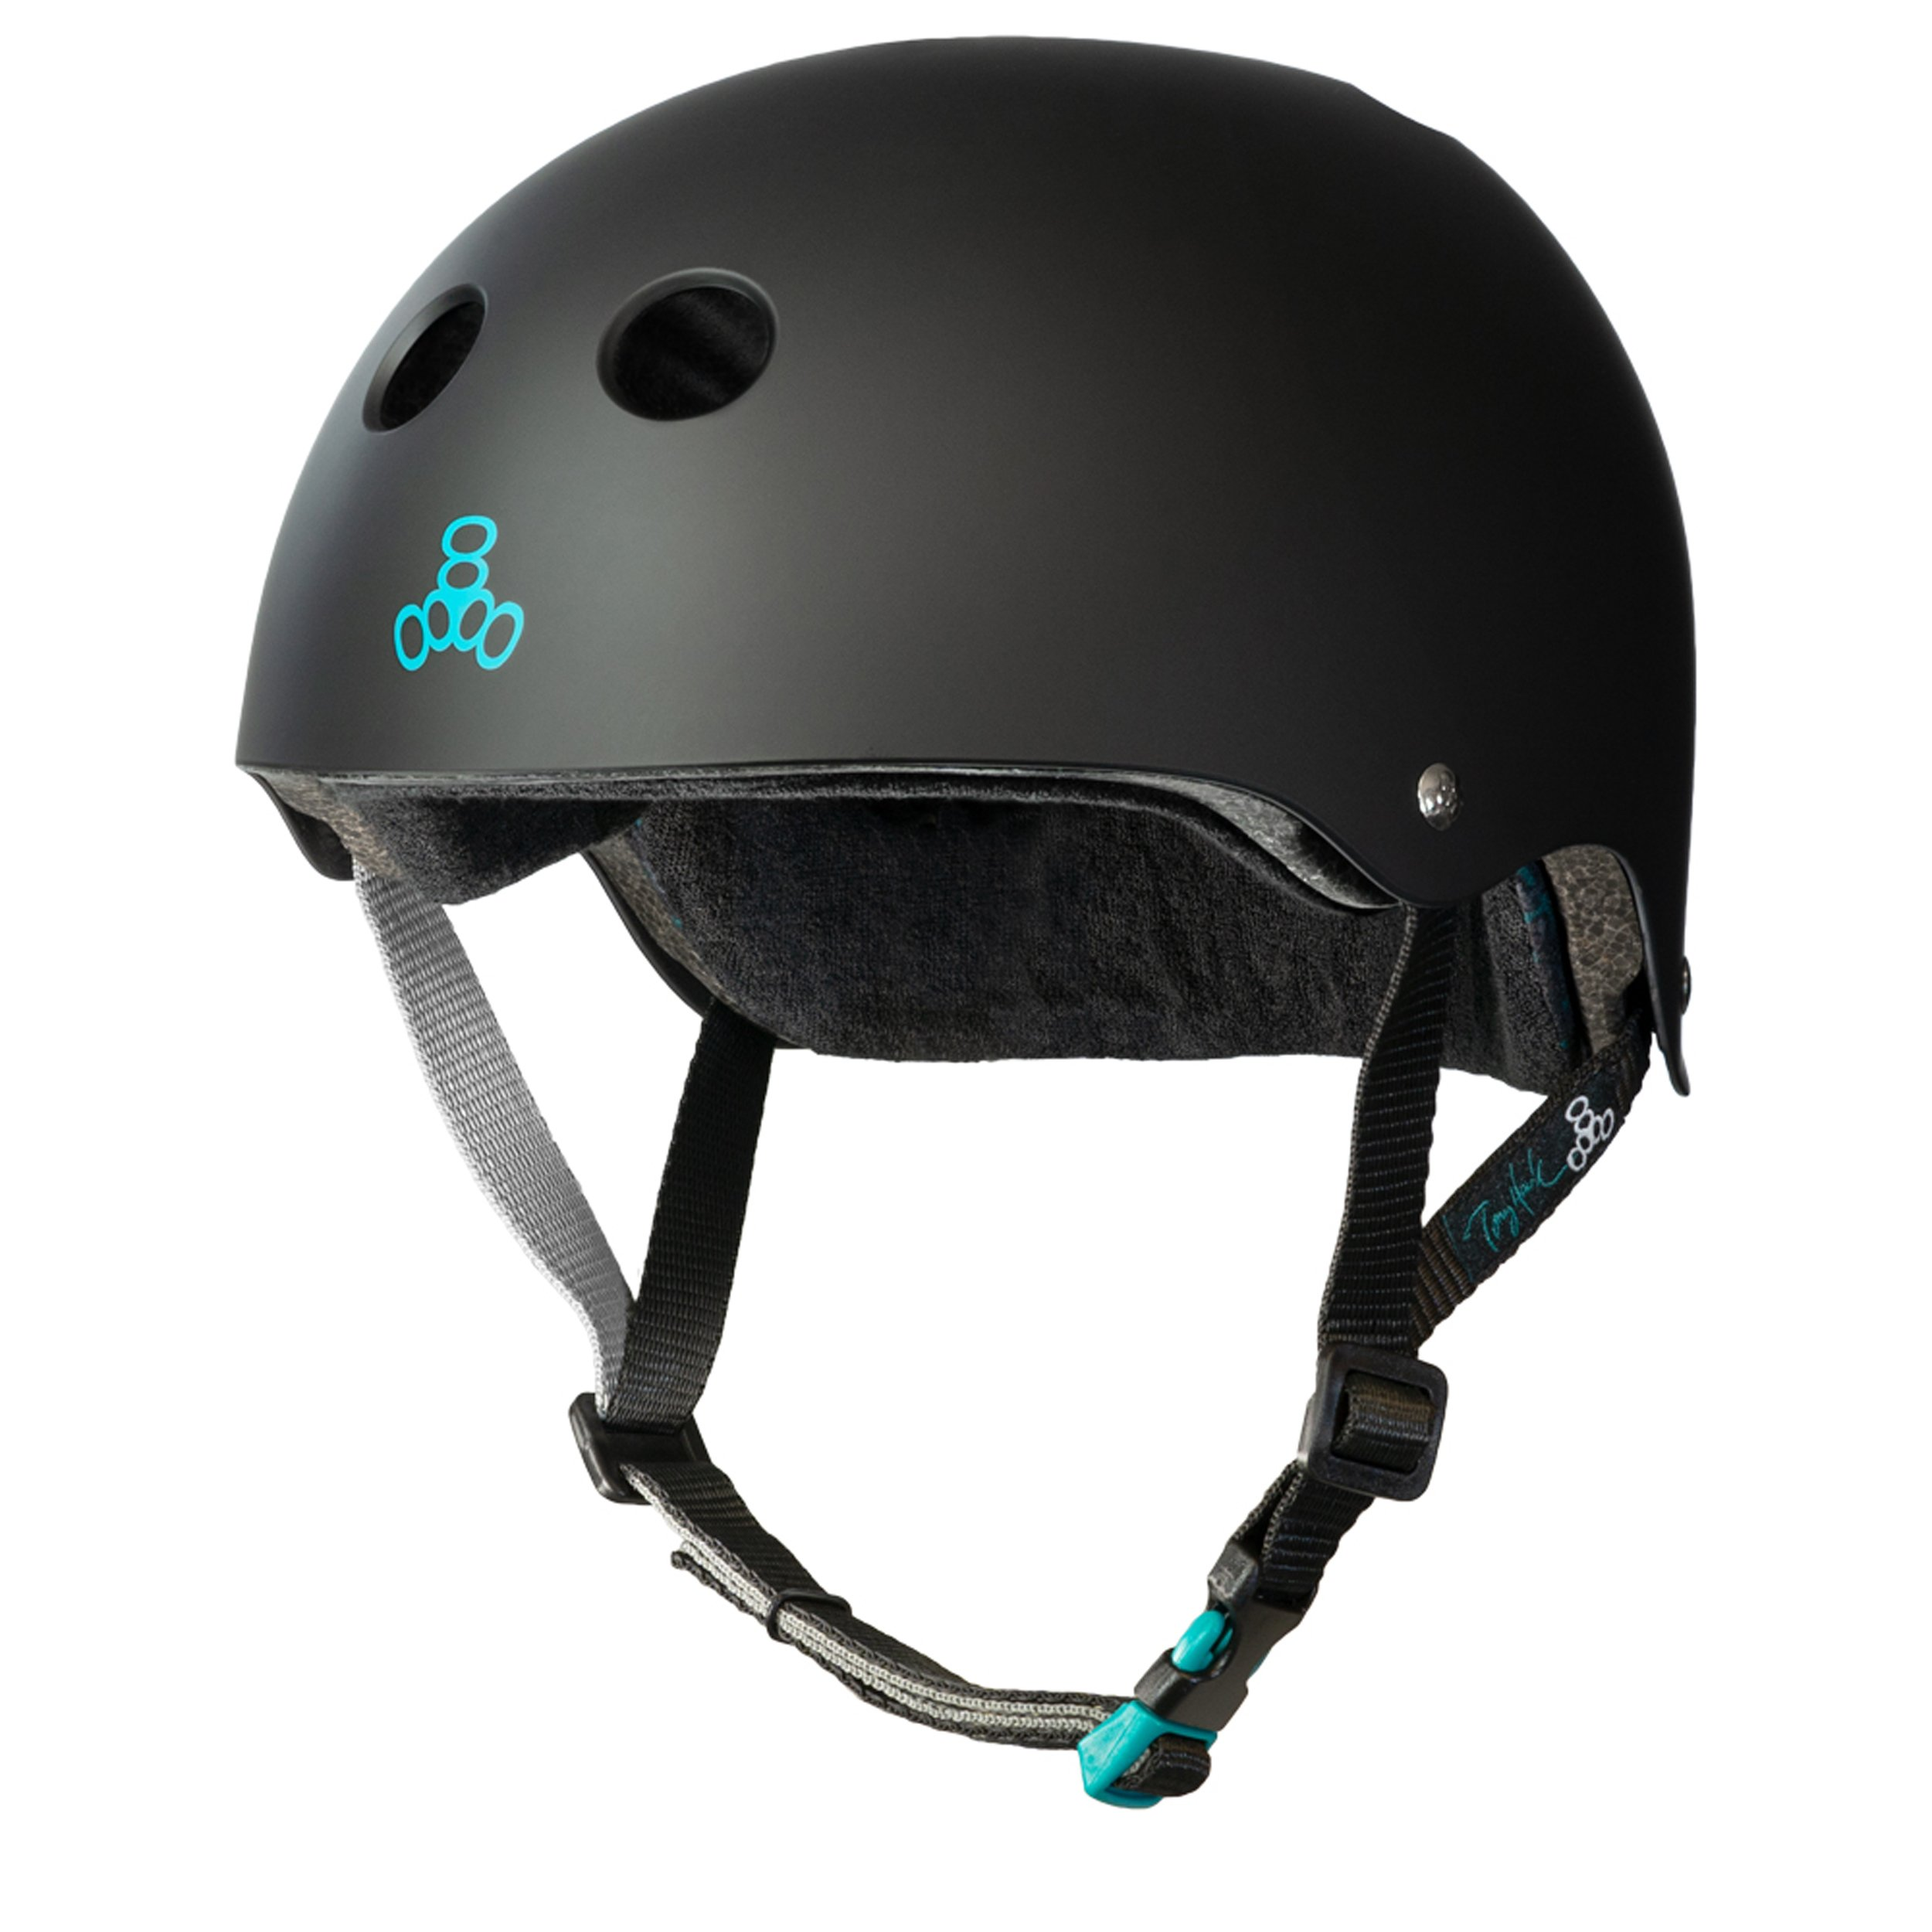 Triple Eight Tony Hawk Signature Model The Certified Sweatsaver Helmet for Skateboarding, BMX, and Roller Skating, Large/X-Large